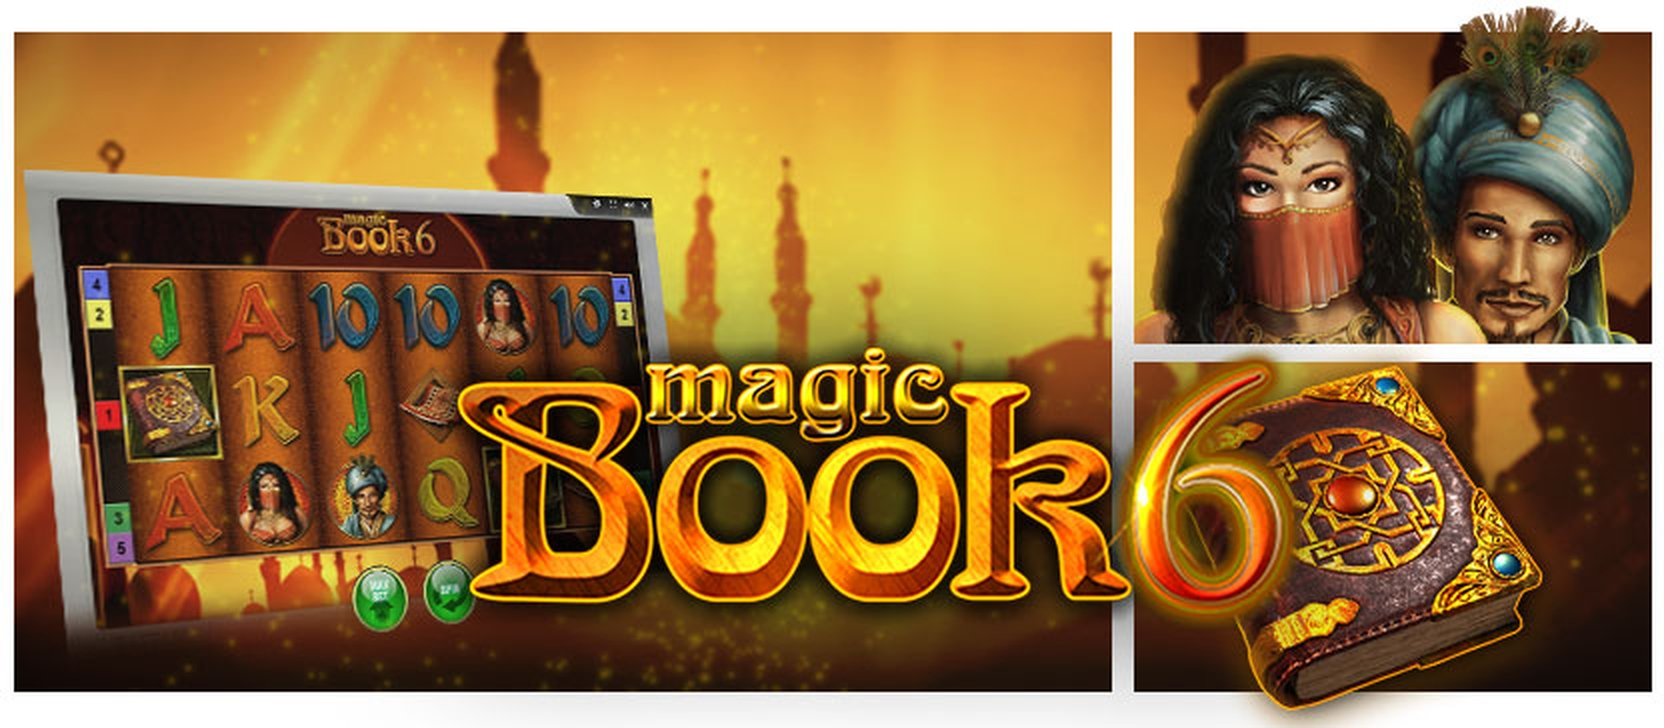 The Magic Book 6 Online Slot Demo Game by Bally Wulff